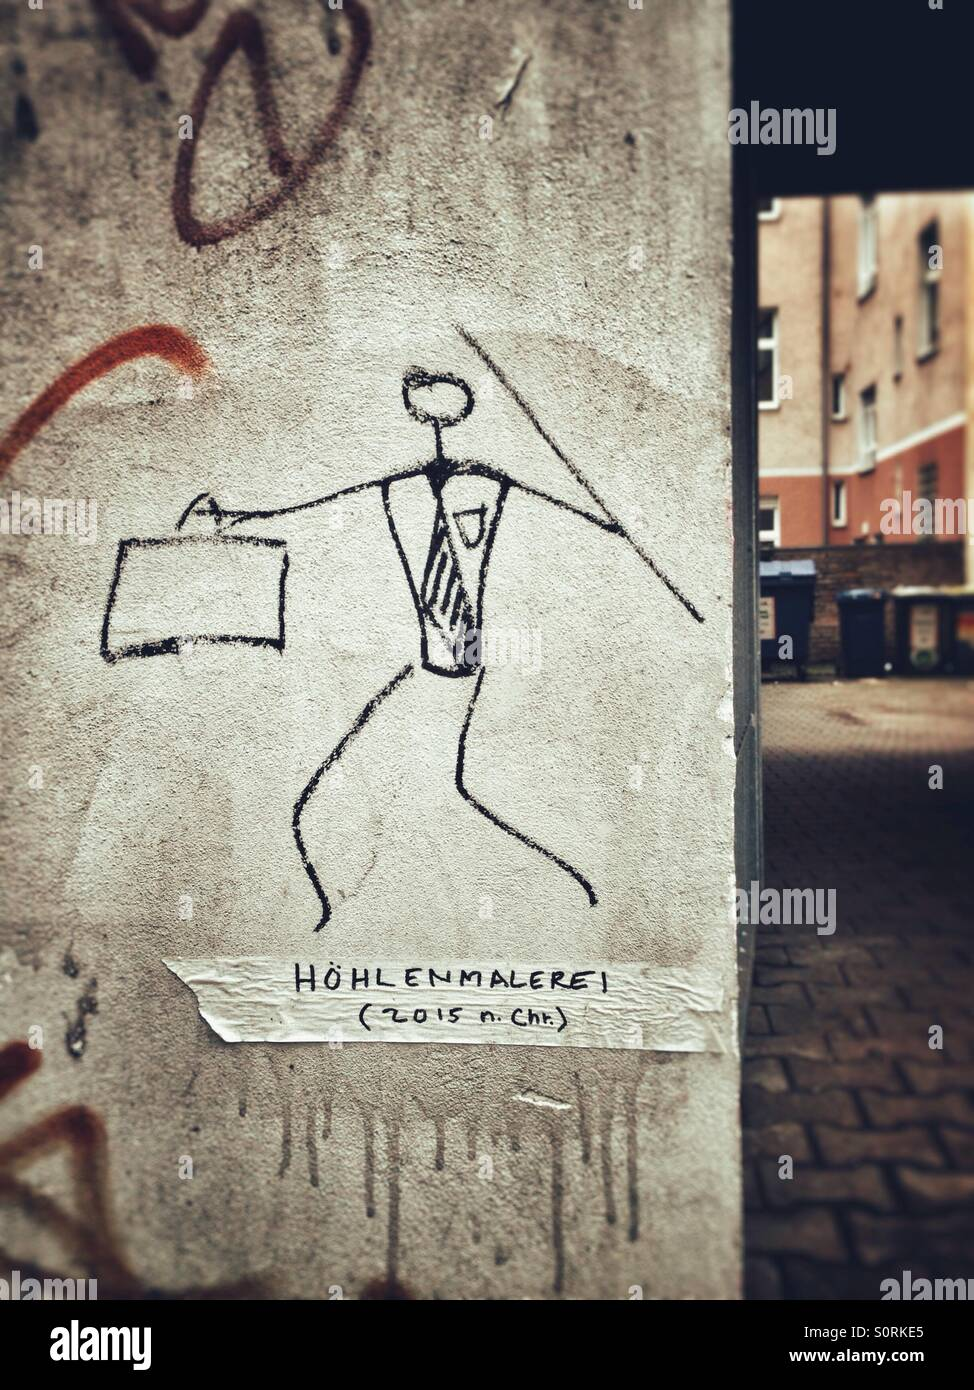 Modern caveman on a wall in Berlin, Germany: businessman stickfigure with suit, tie, briefcase and spear; German - Stock Image